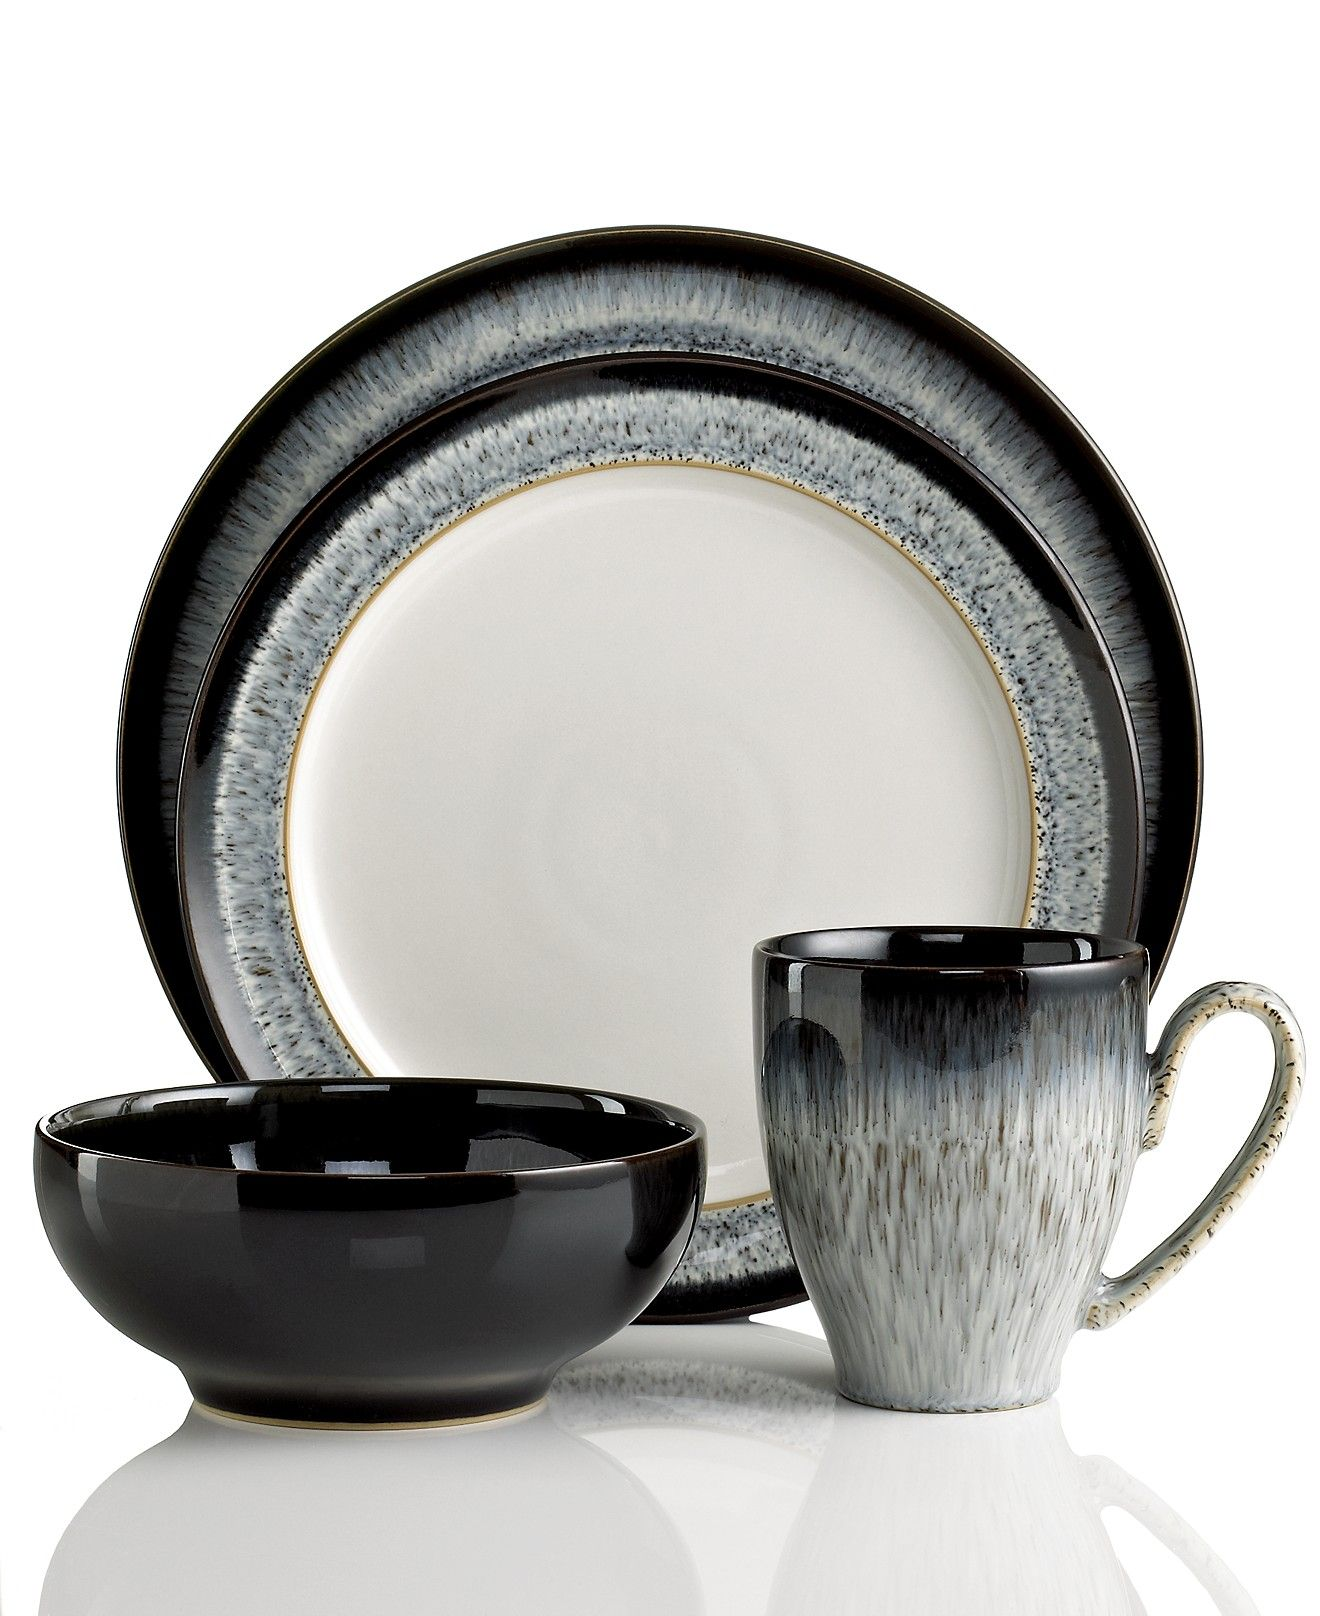 Denby Dinnerware Halo Collection Reviews Dinnerware Dining Macy S Dinnerware Sets Halo Collection Casual Dinnerware